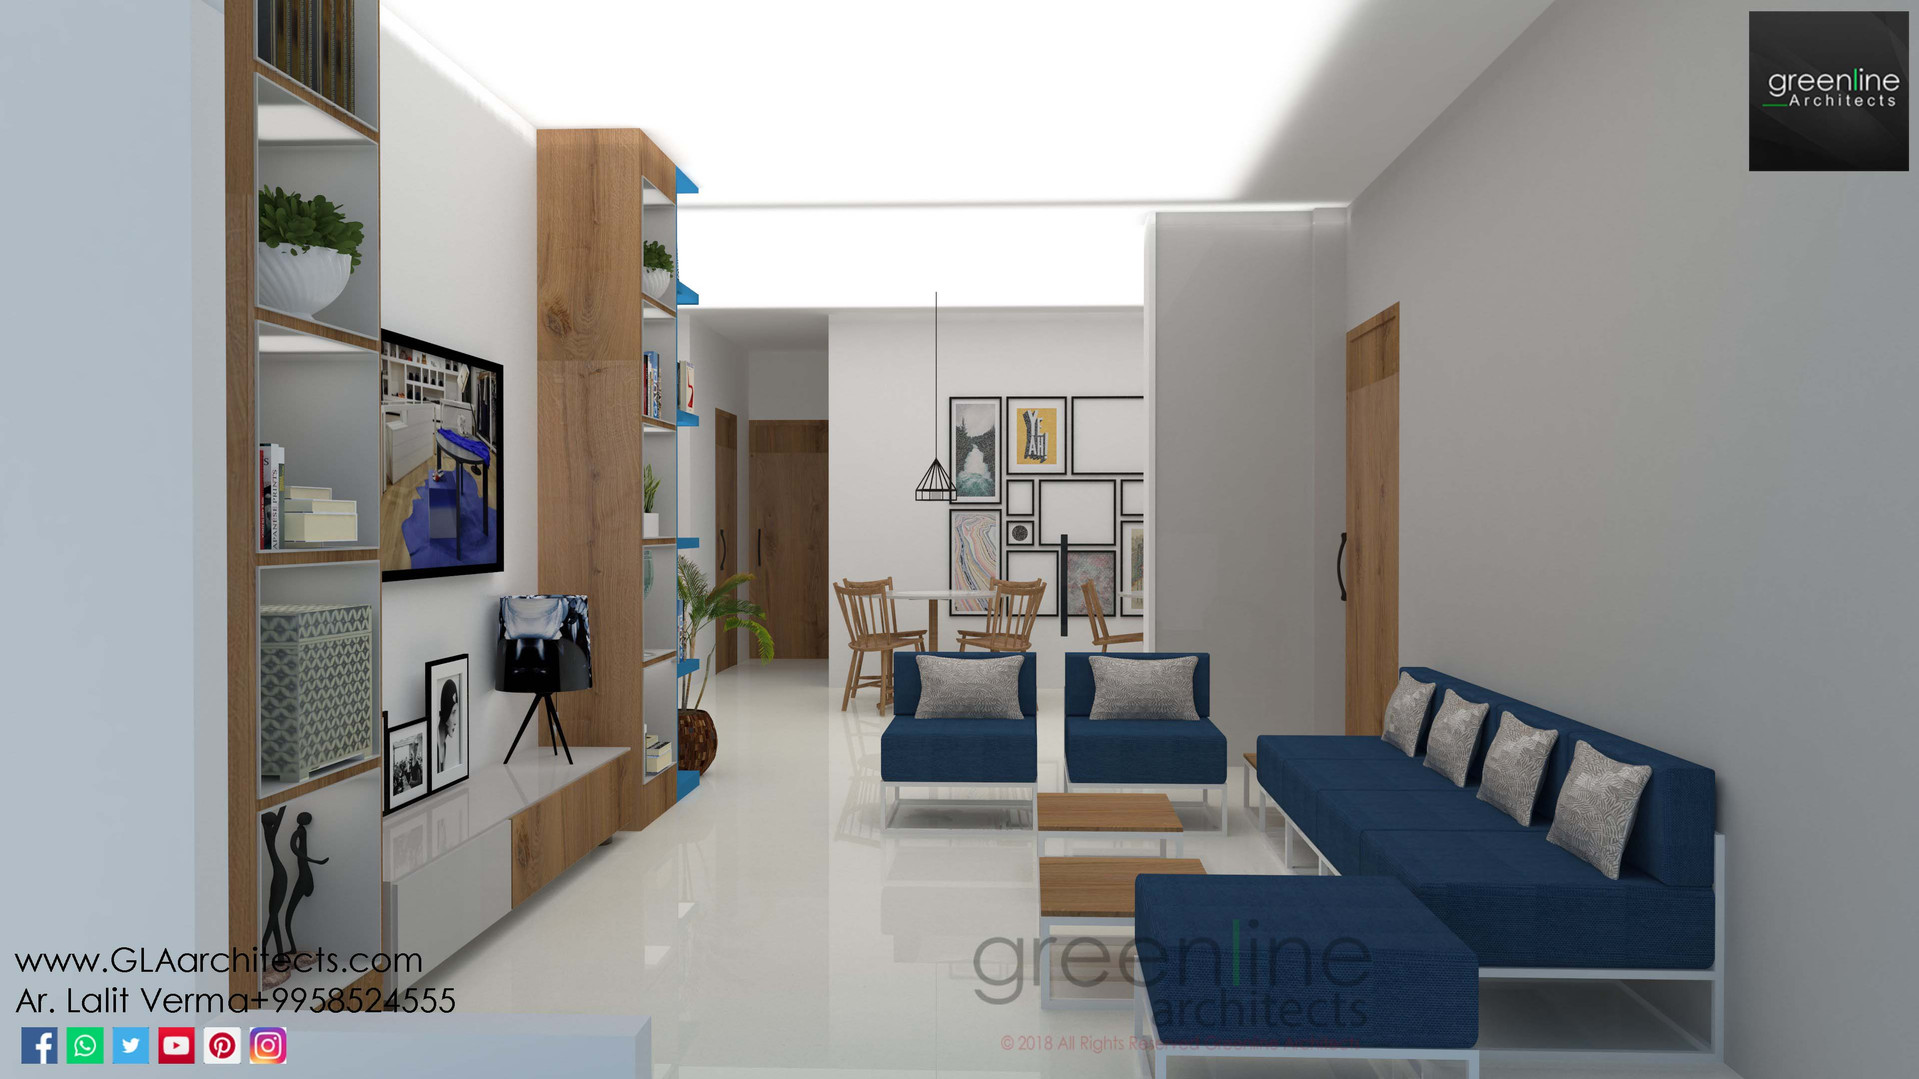 Livork_Hostel_Room_Interior_Design (7).j